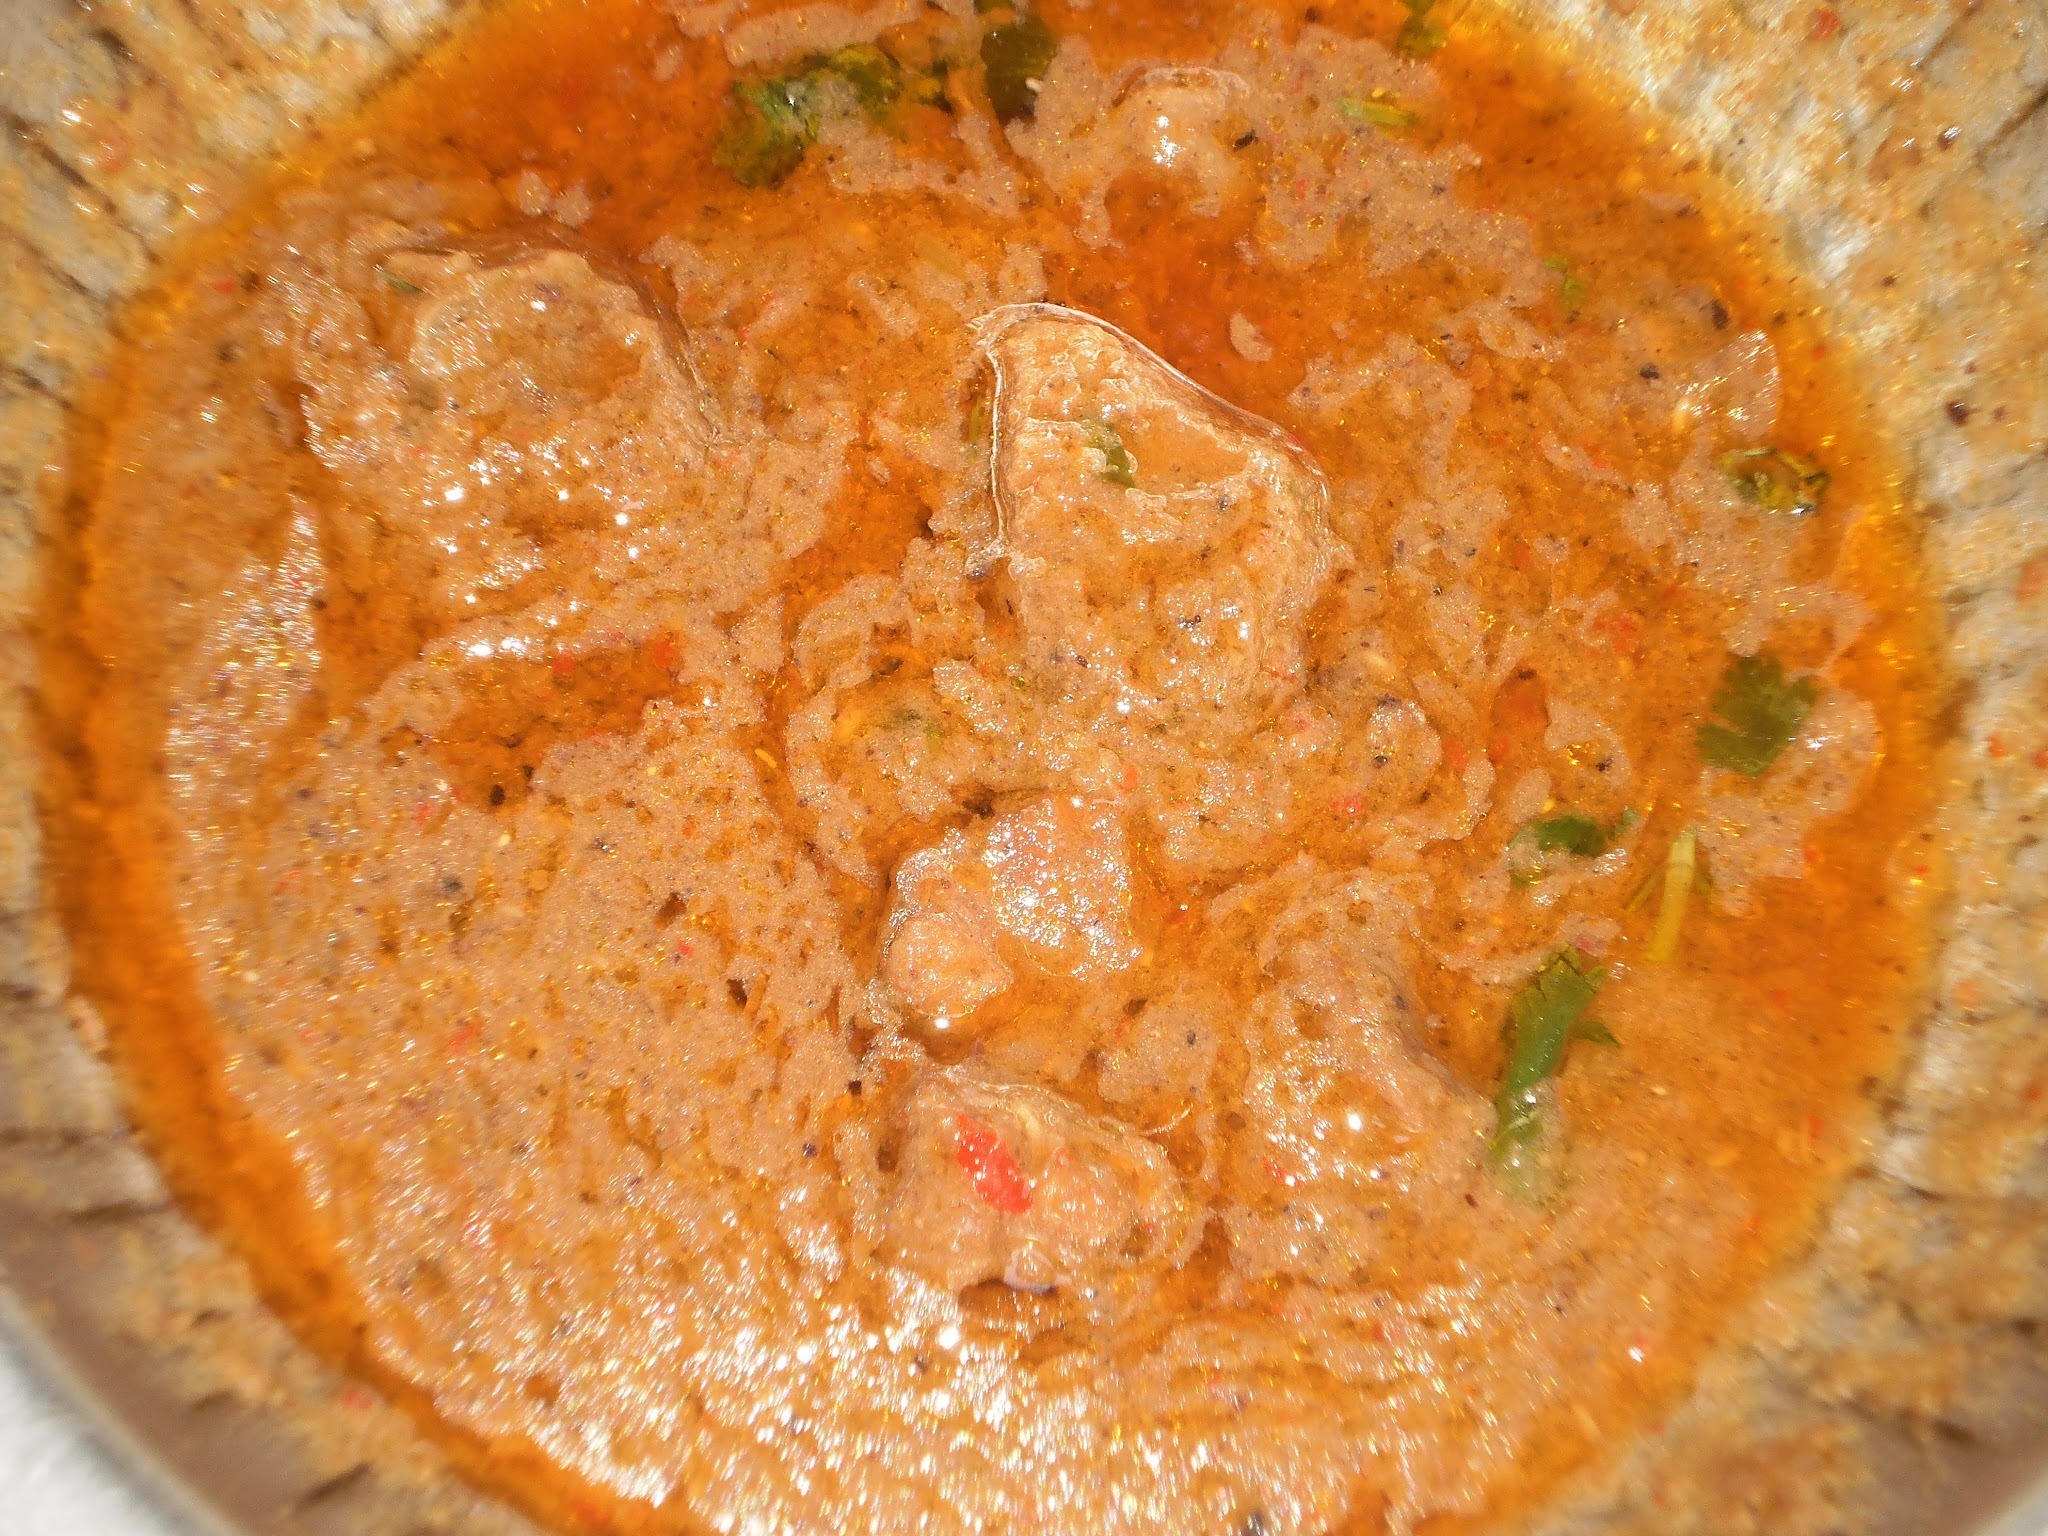 Mughlai Korma (Lamb/Mutton in a spicy sauce)